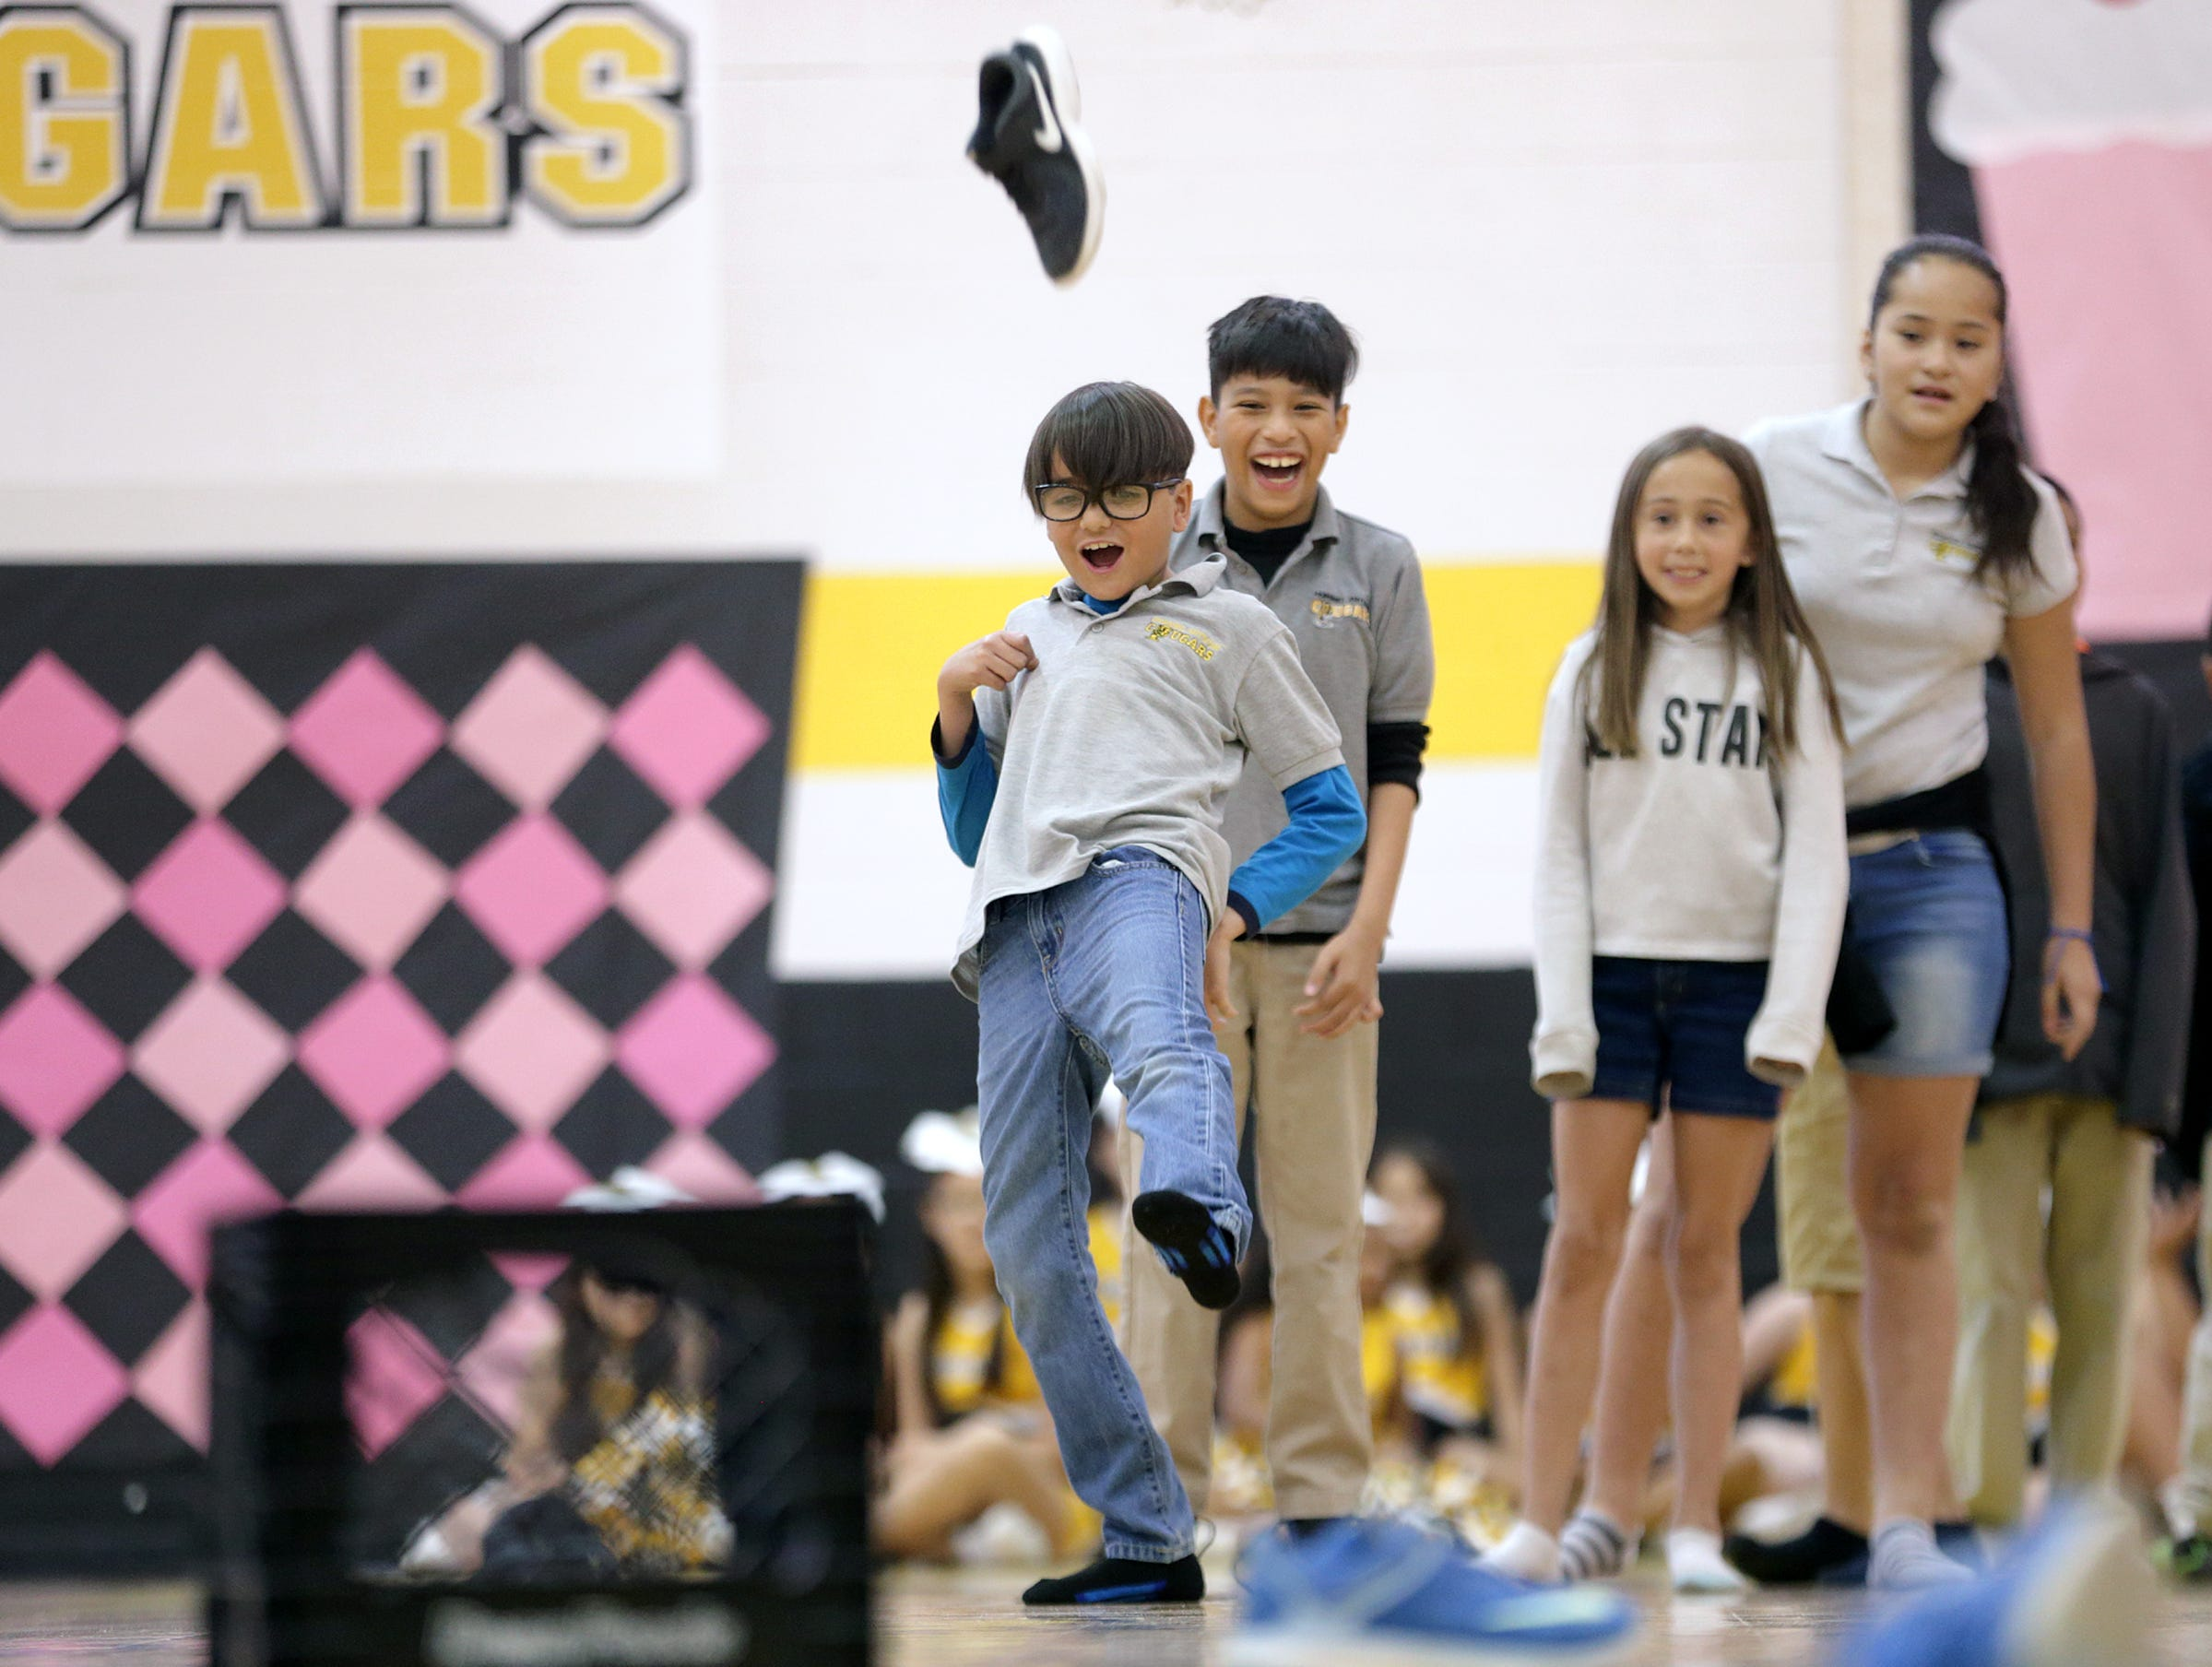 Hurshel Antwine Elementary students try to kick their shoes into a milk crate as they play a game at the school's STAAR rally Friday.